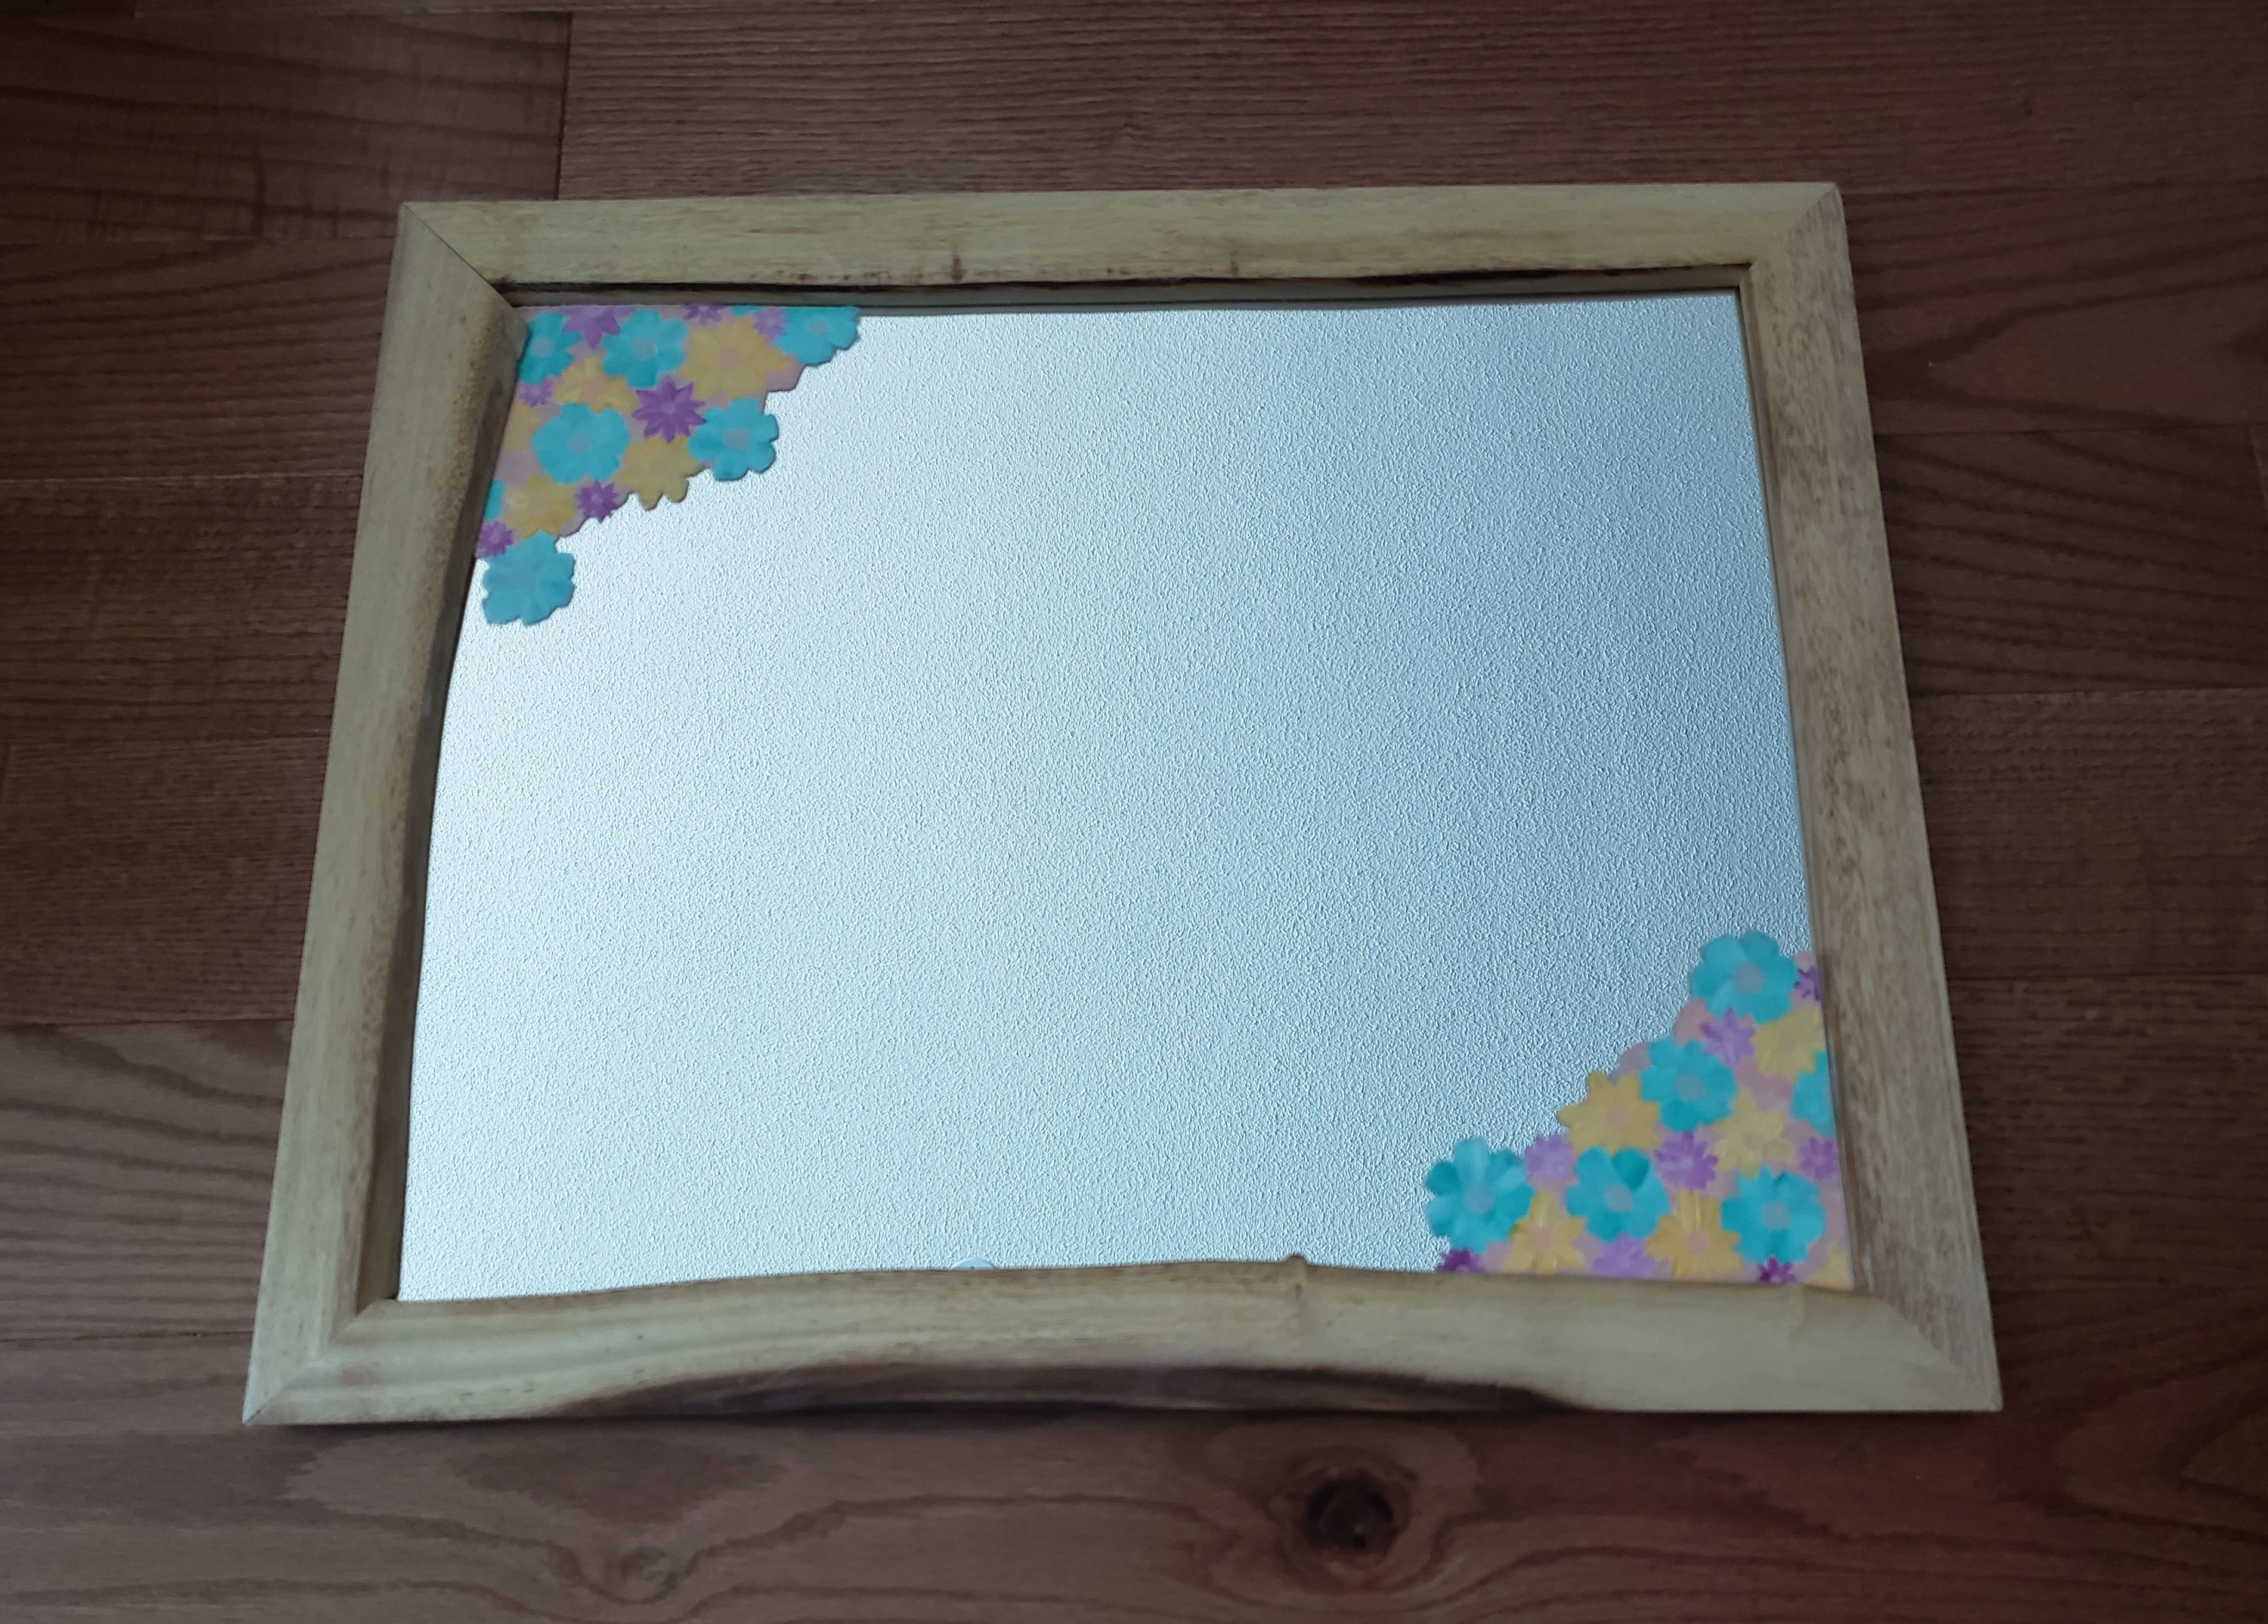 Customizable Mirror with Pastel Floral Details (2020)